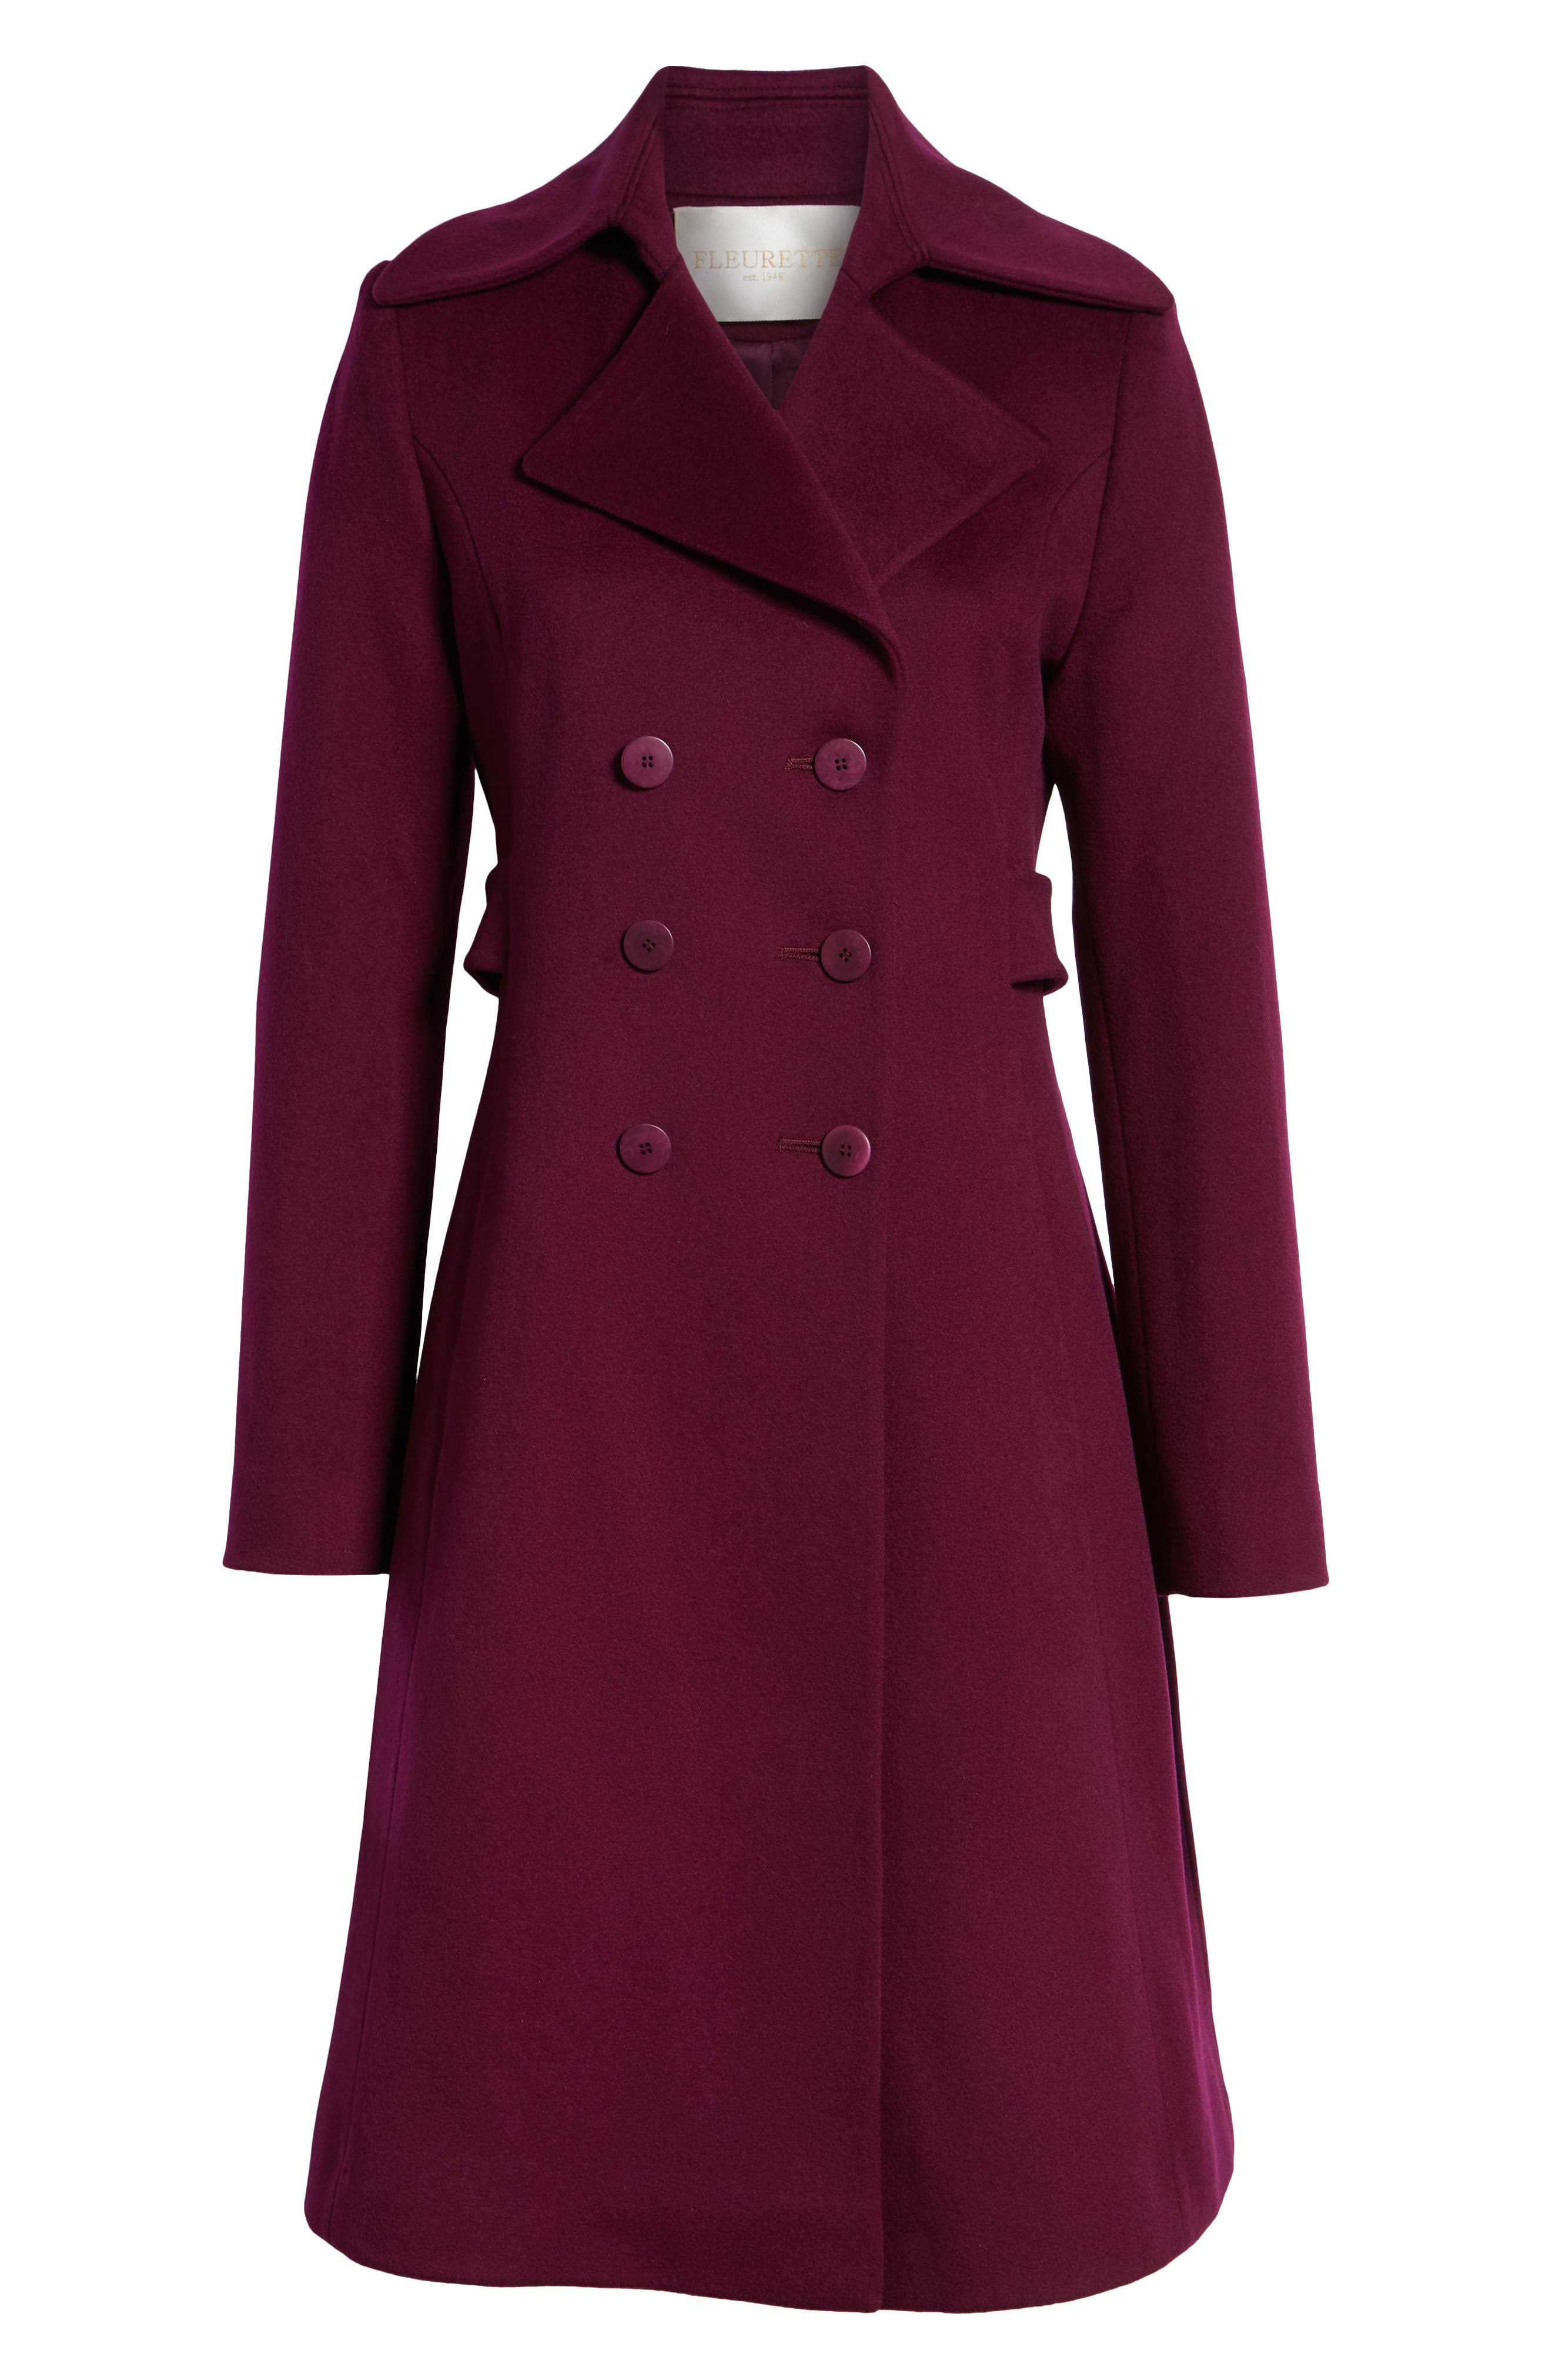 Double Breasted Loro Piana Wool Coat,                             Alternate thumbnail 6, color,                             600